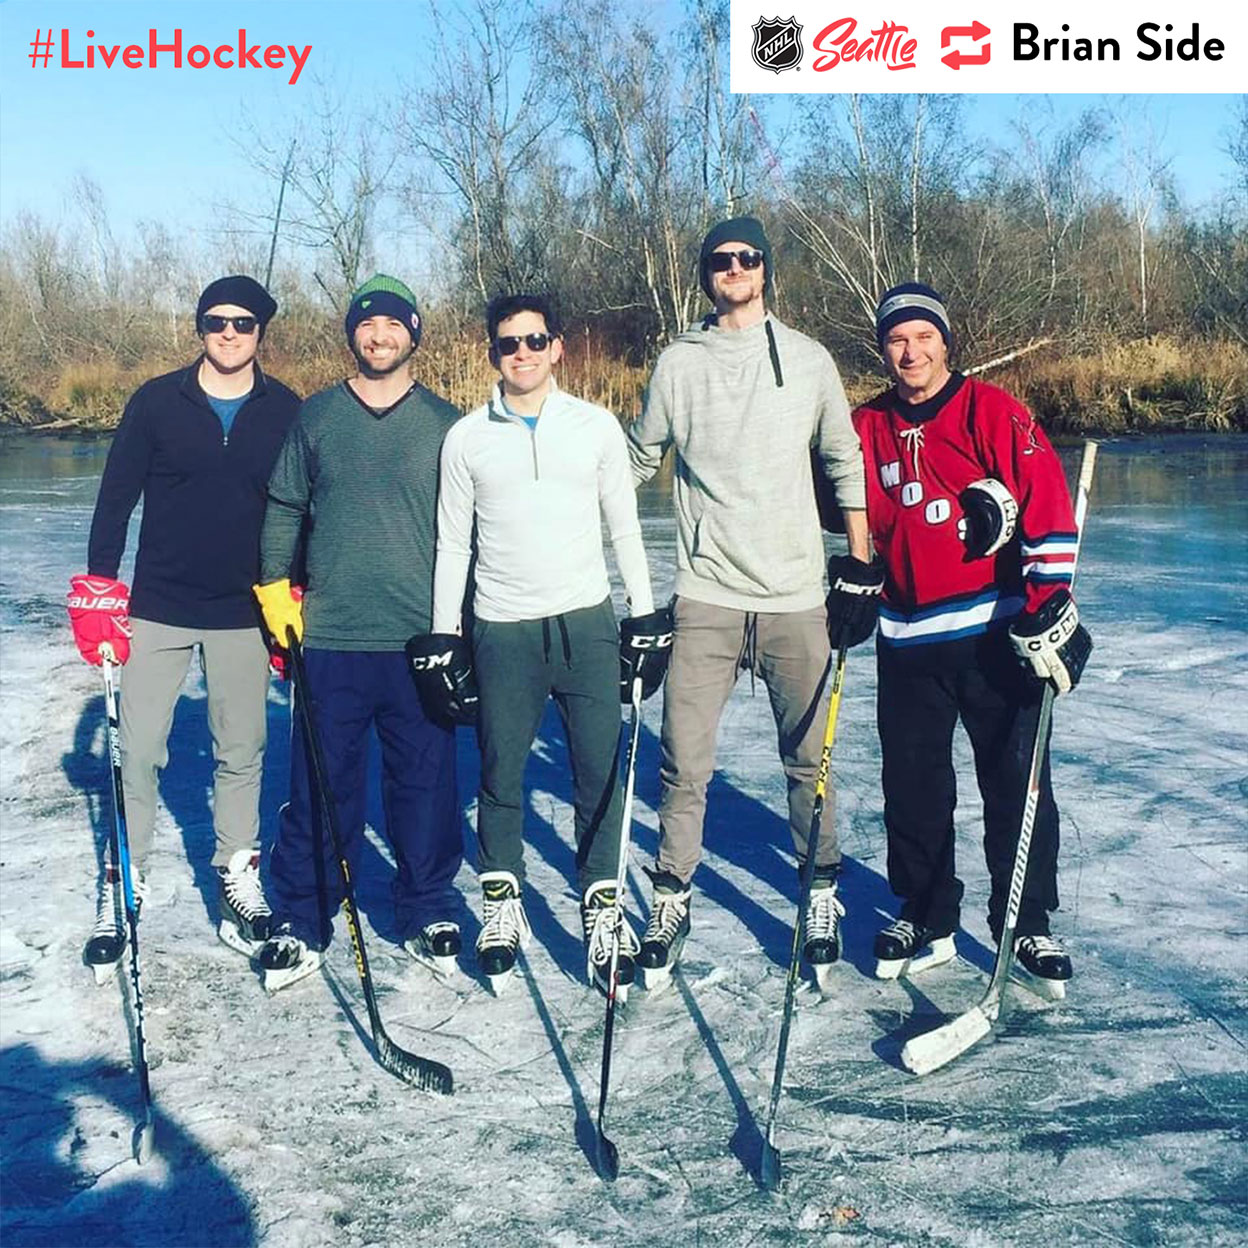 """""""When the UW arboretum freezes with just a few inches of ice #livehockey"""""""